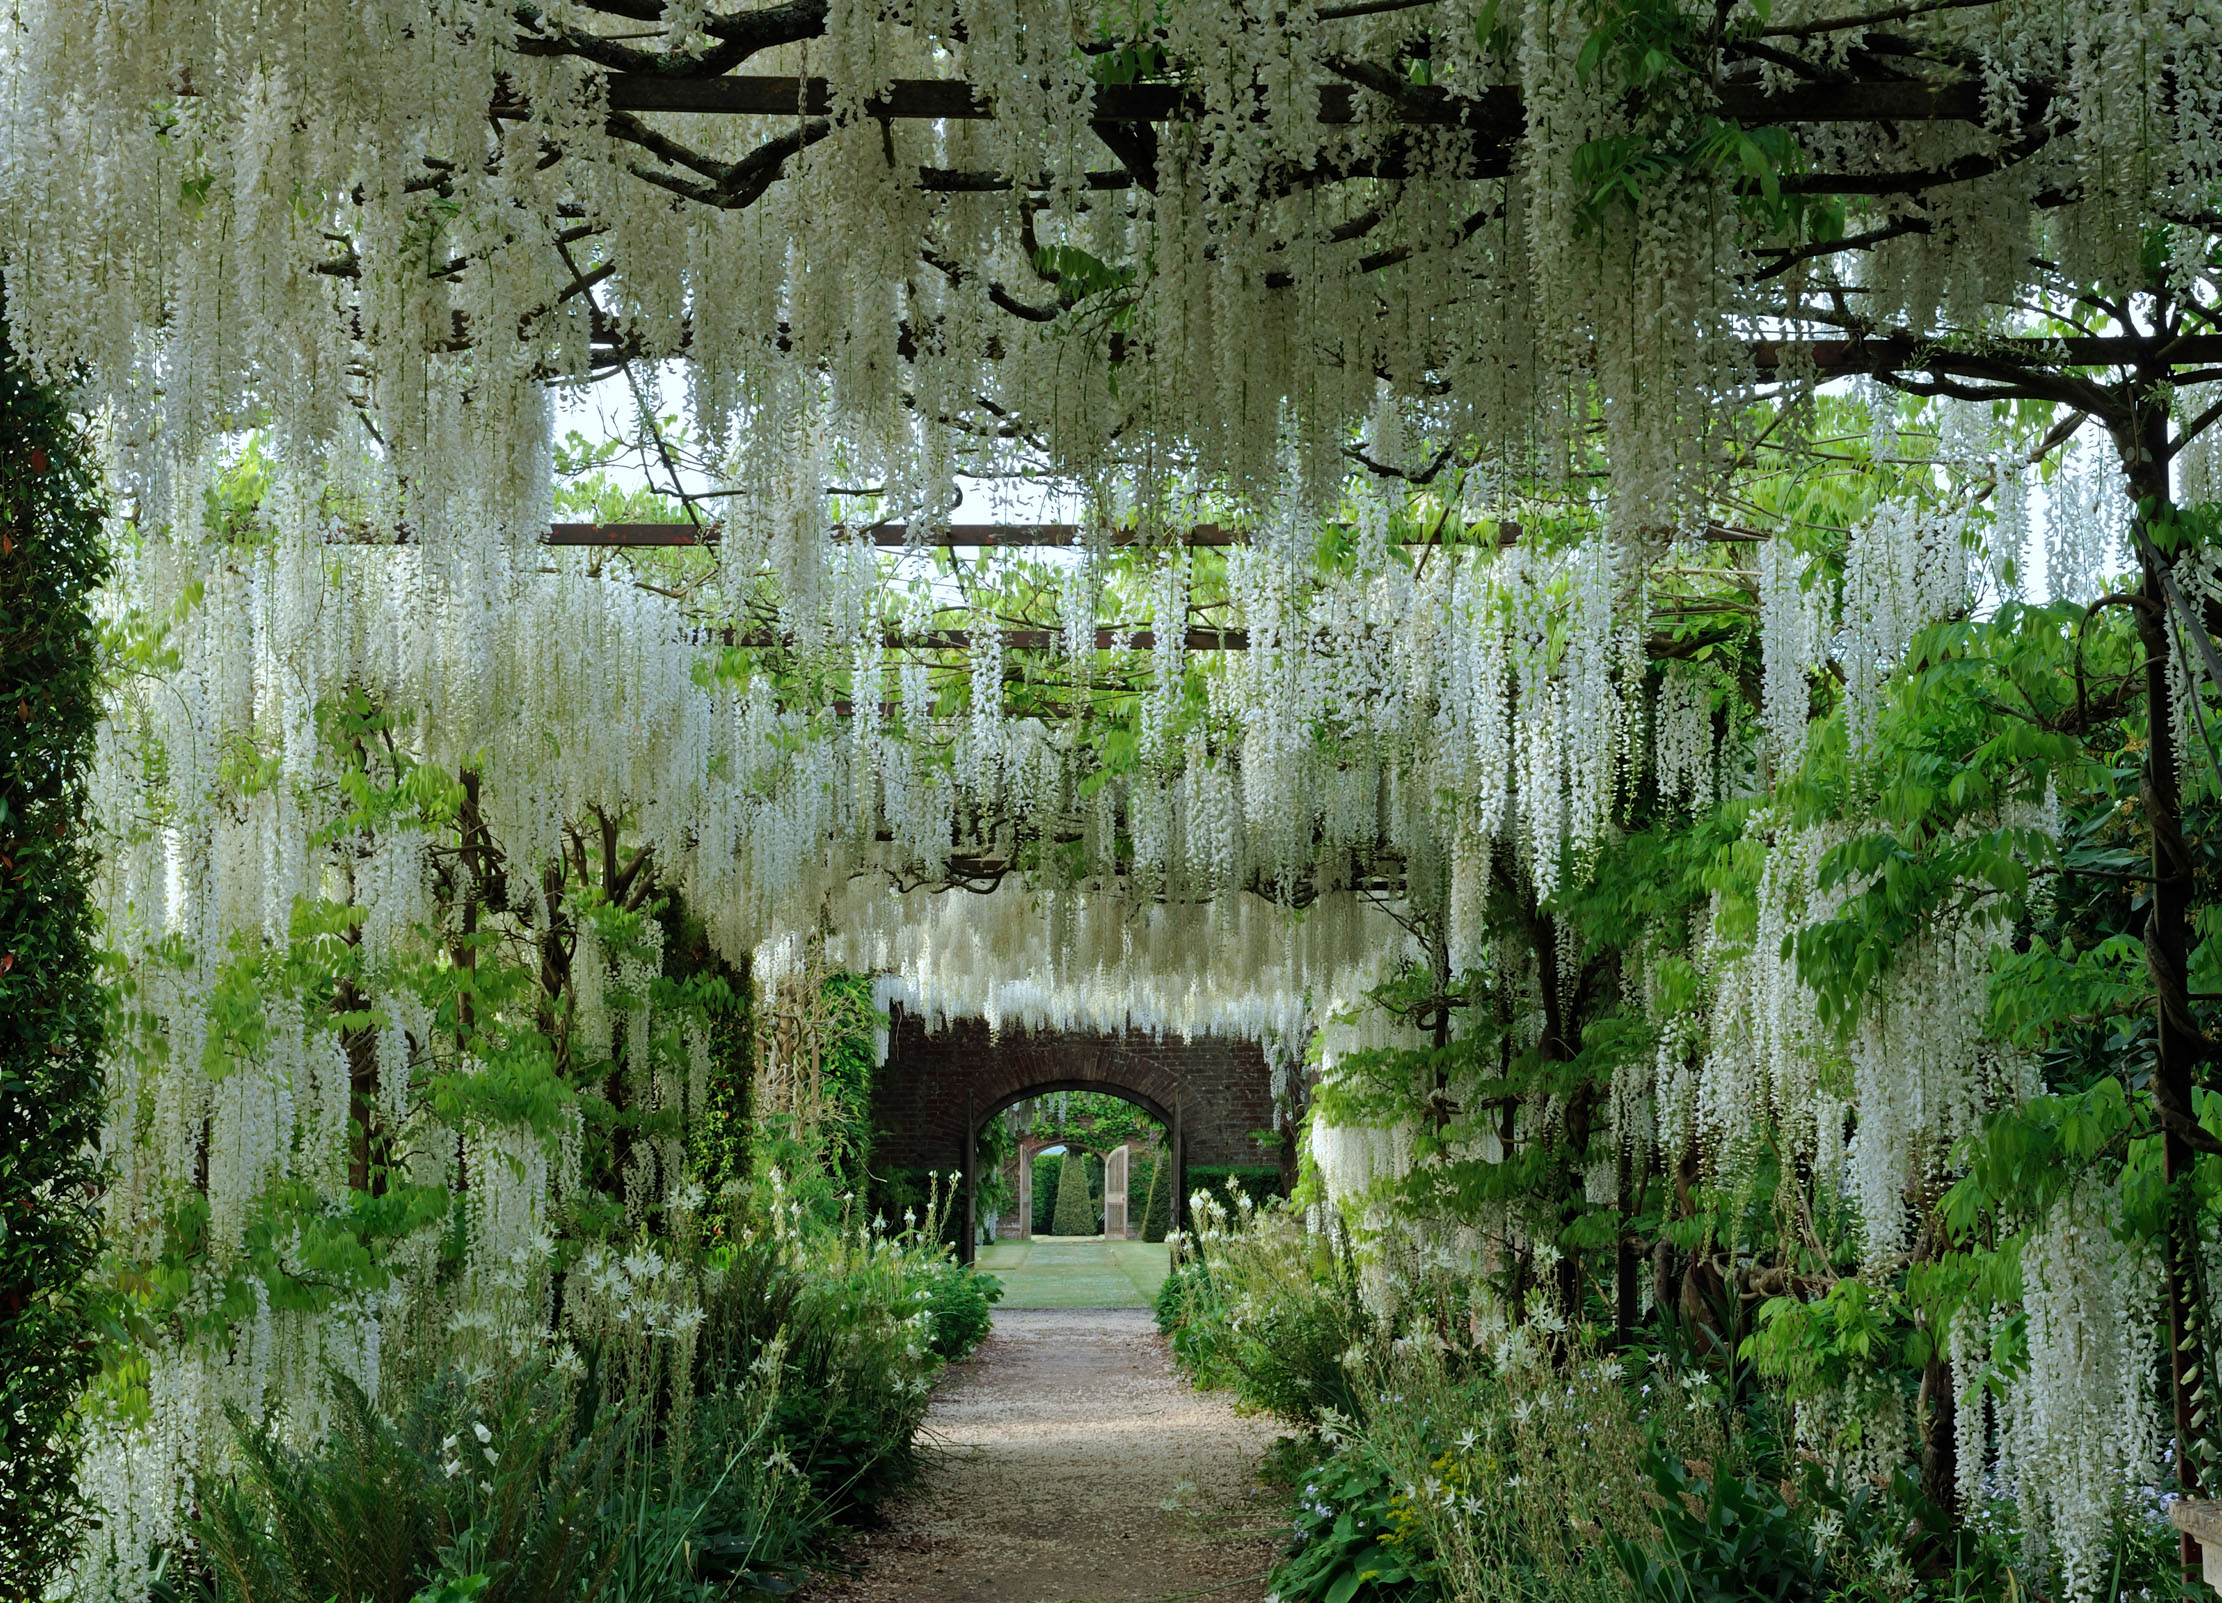 The secrets of the wisteria pergolas in the Private Gardens at Petworth House - Country Life